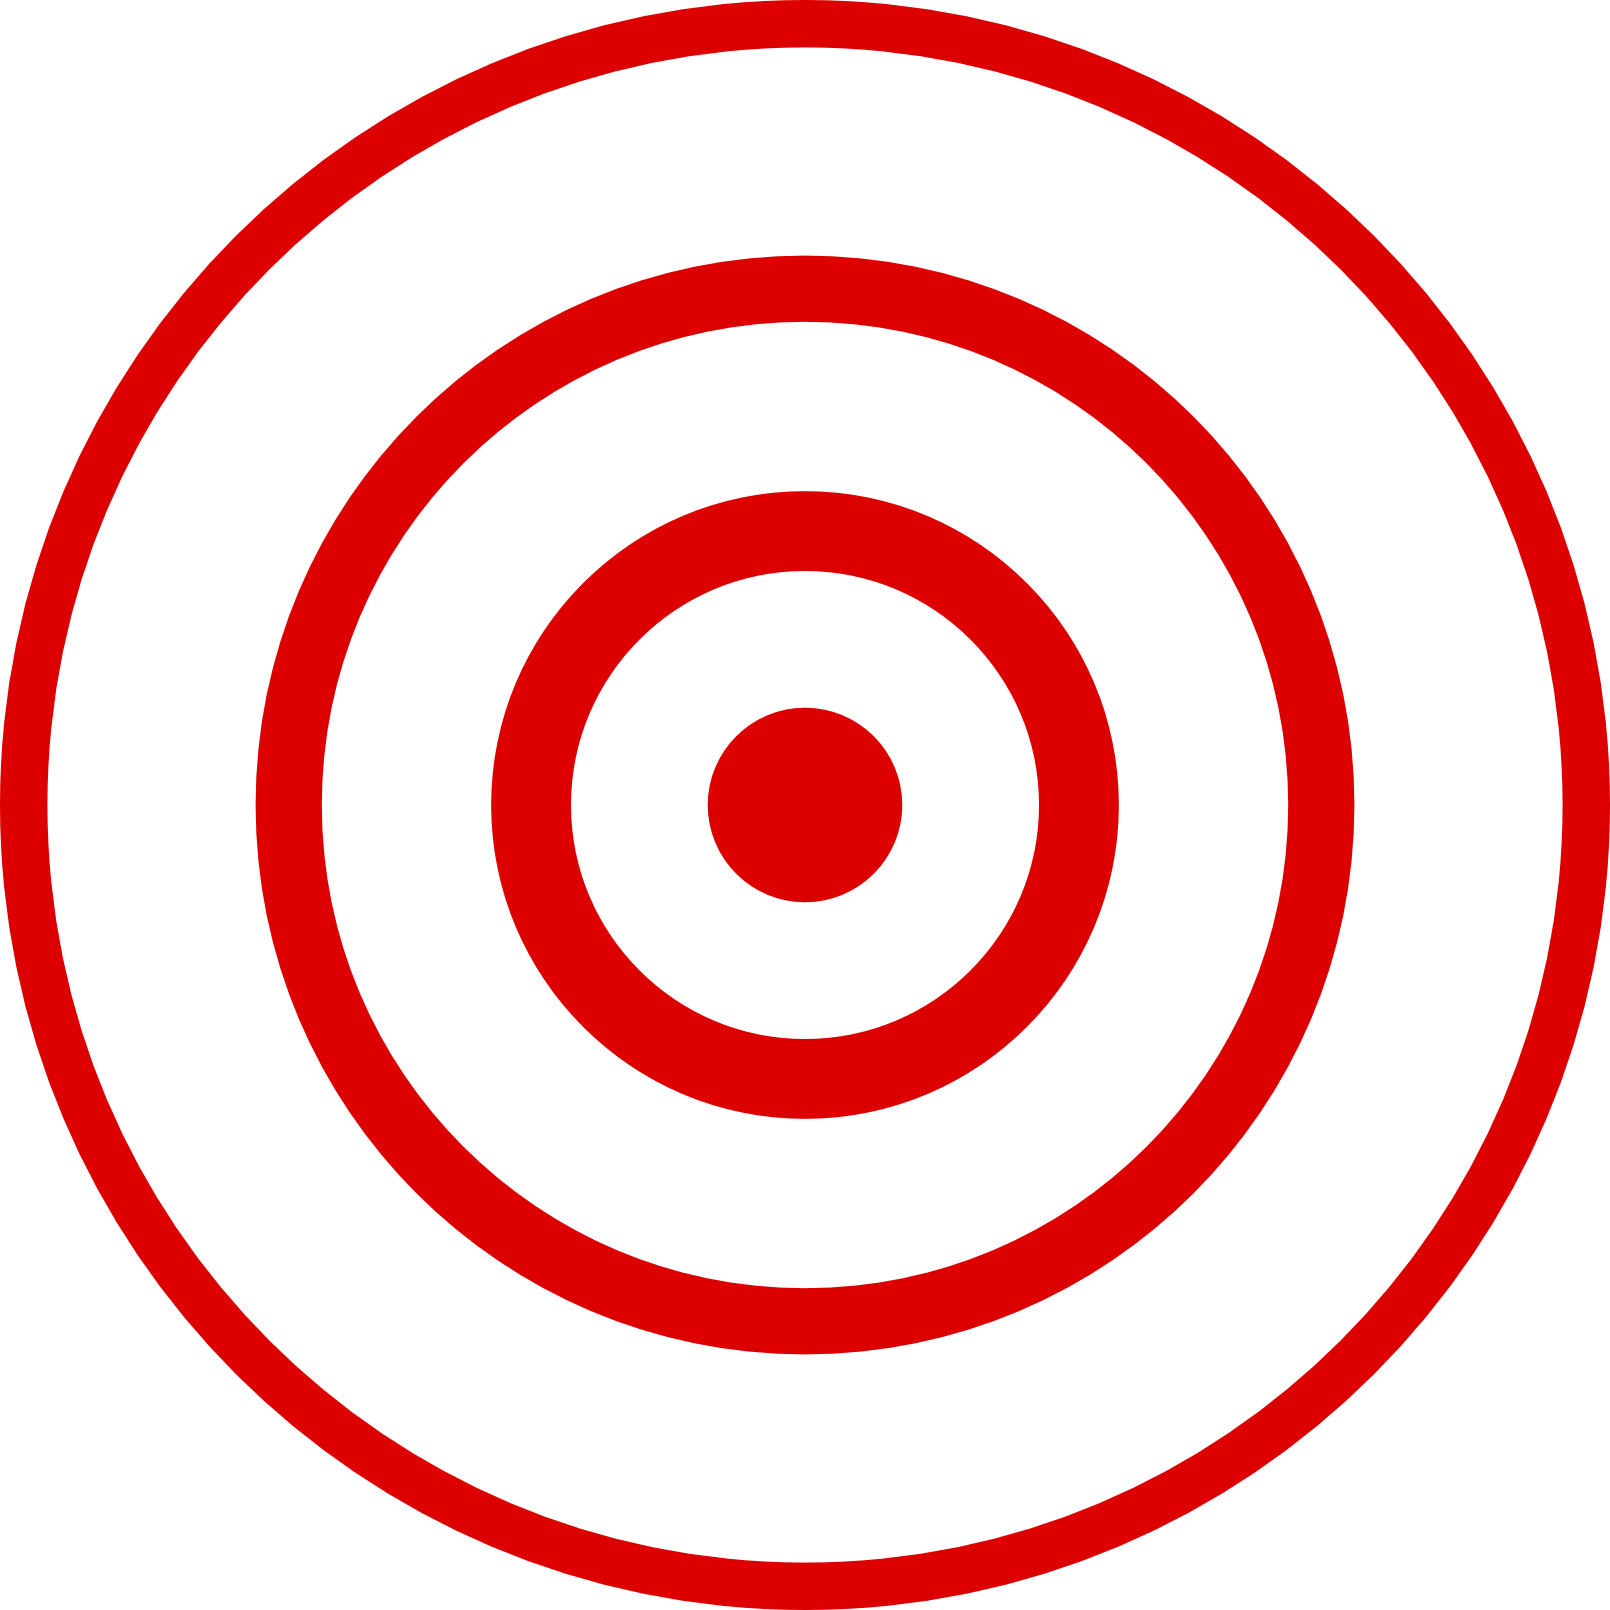 Clipart target bullseye clipart black and white Bullseye Target Clipart - Clipart Kid clipart black and white